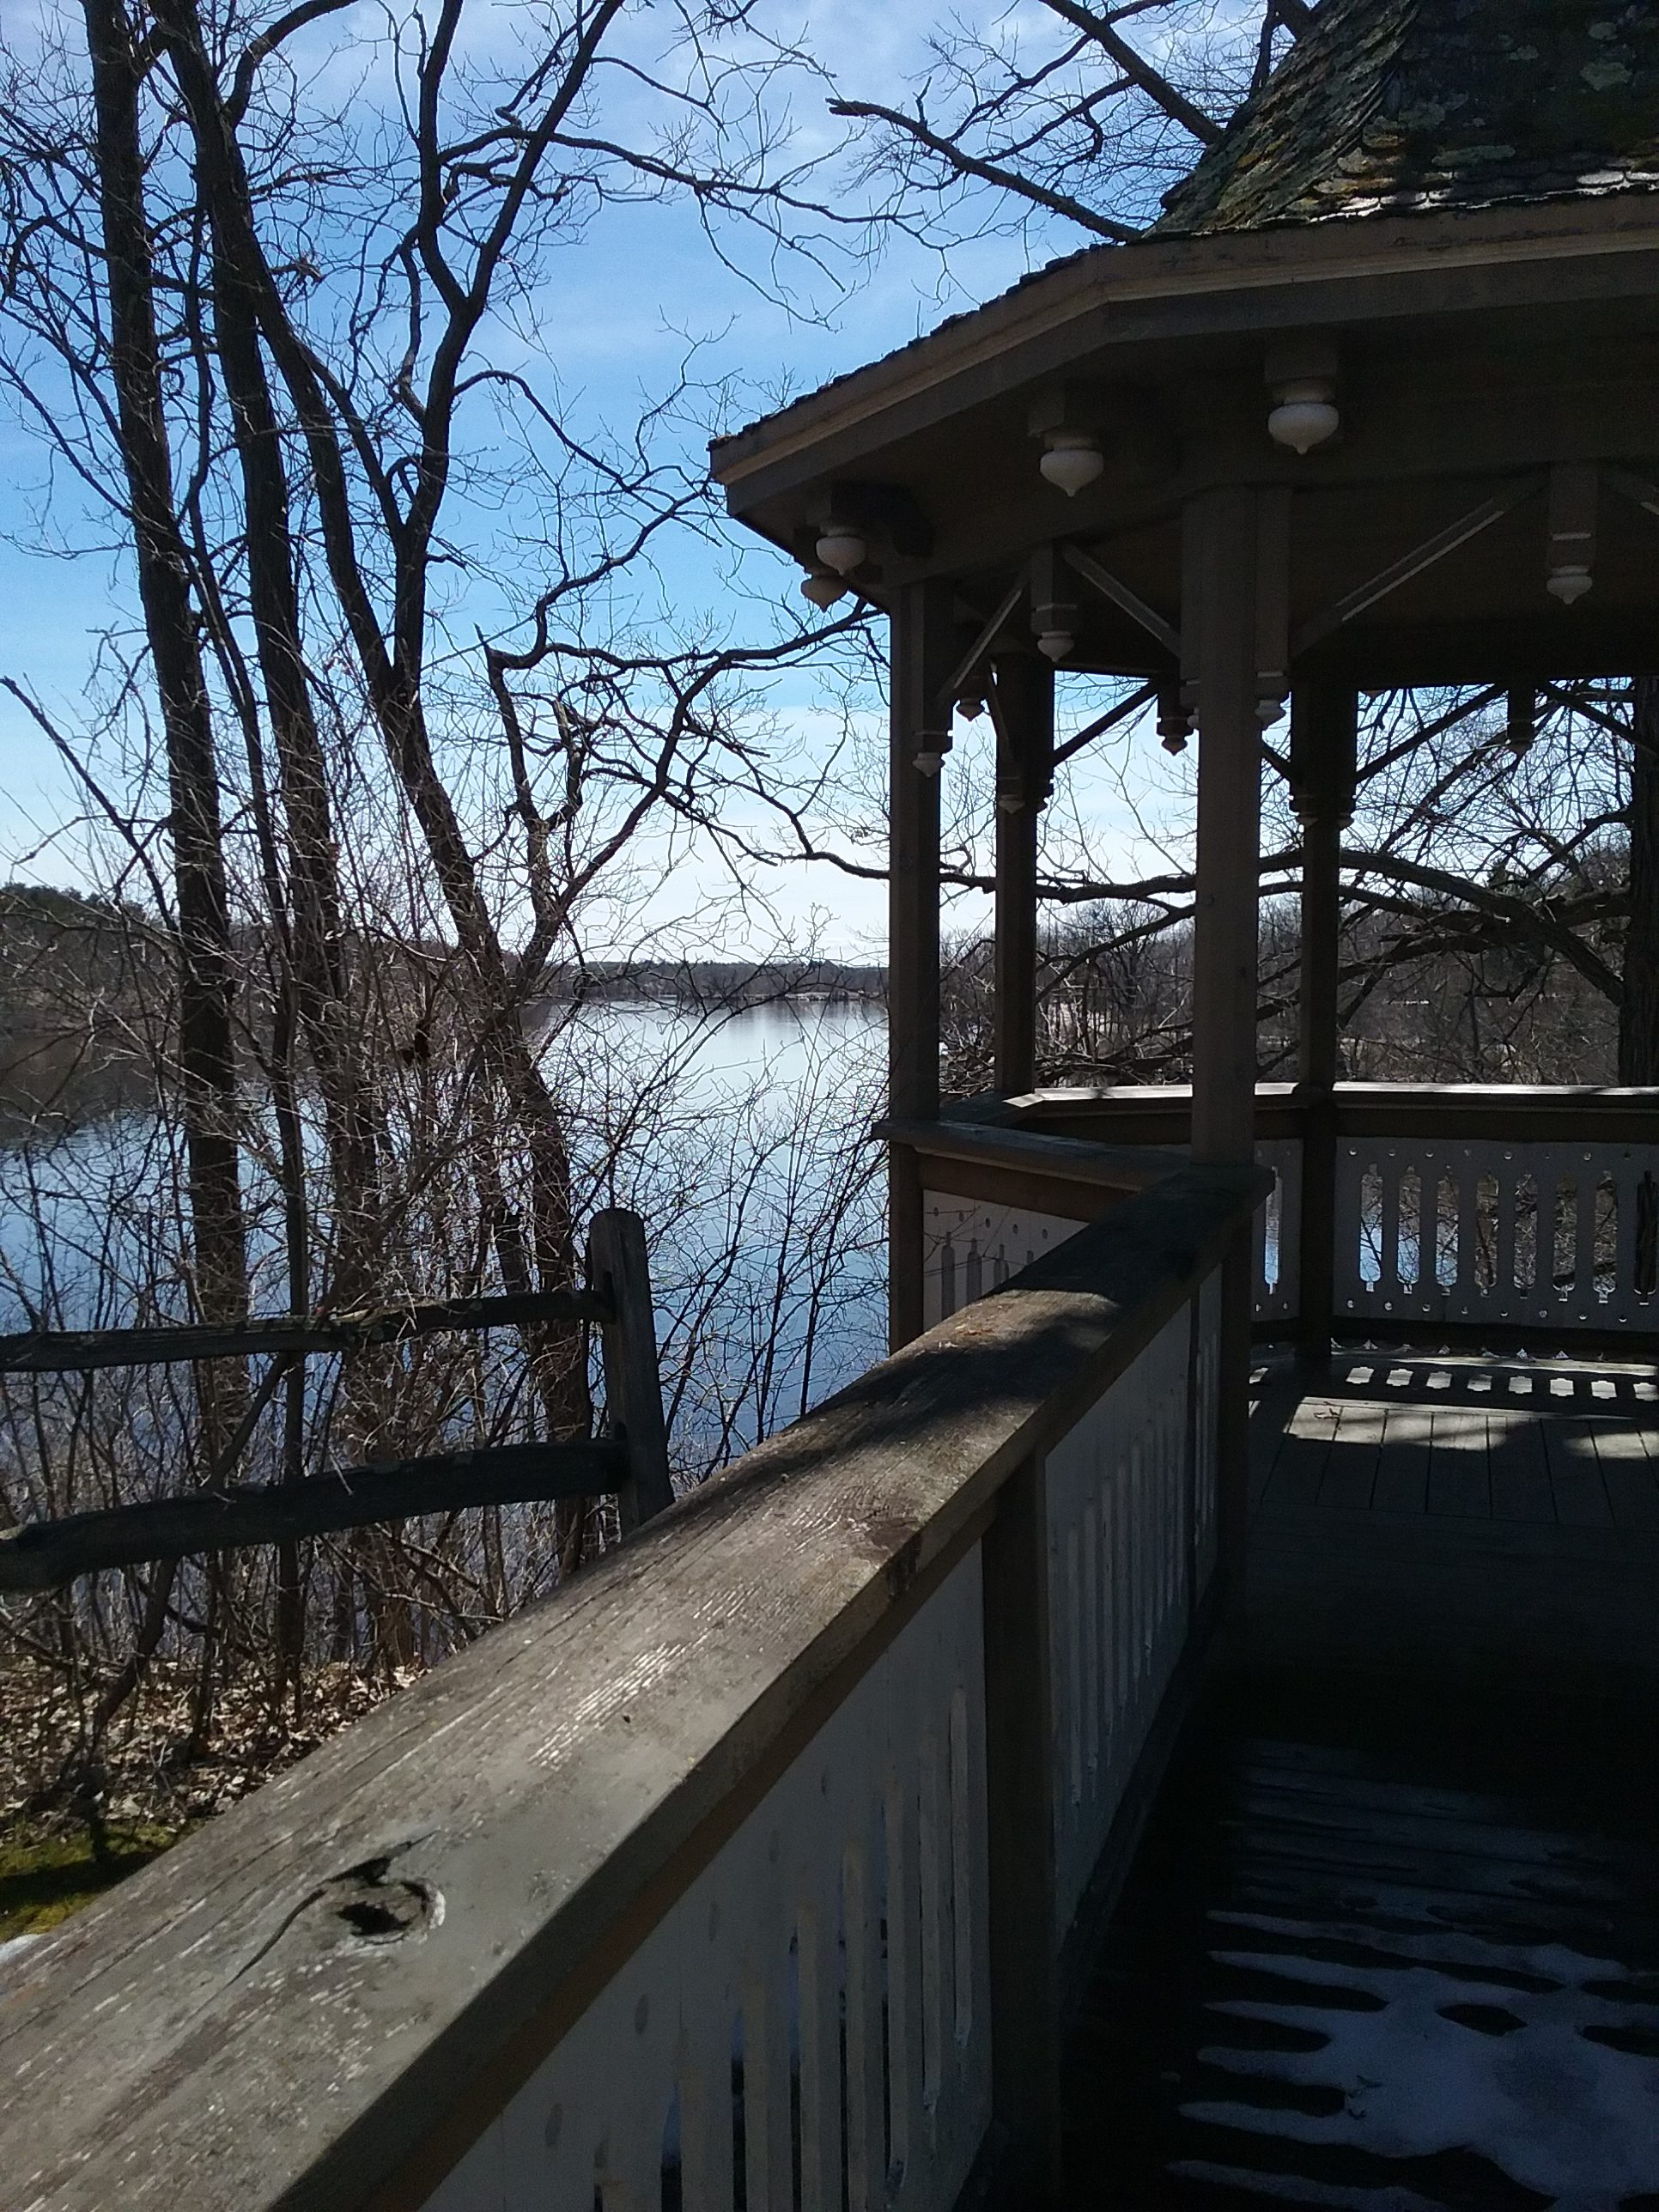 Gazebo and Mississippi River at The Charles A. Weyerhaeuser Memorial Museum, 2019.